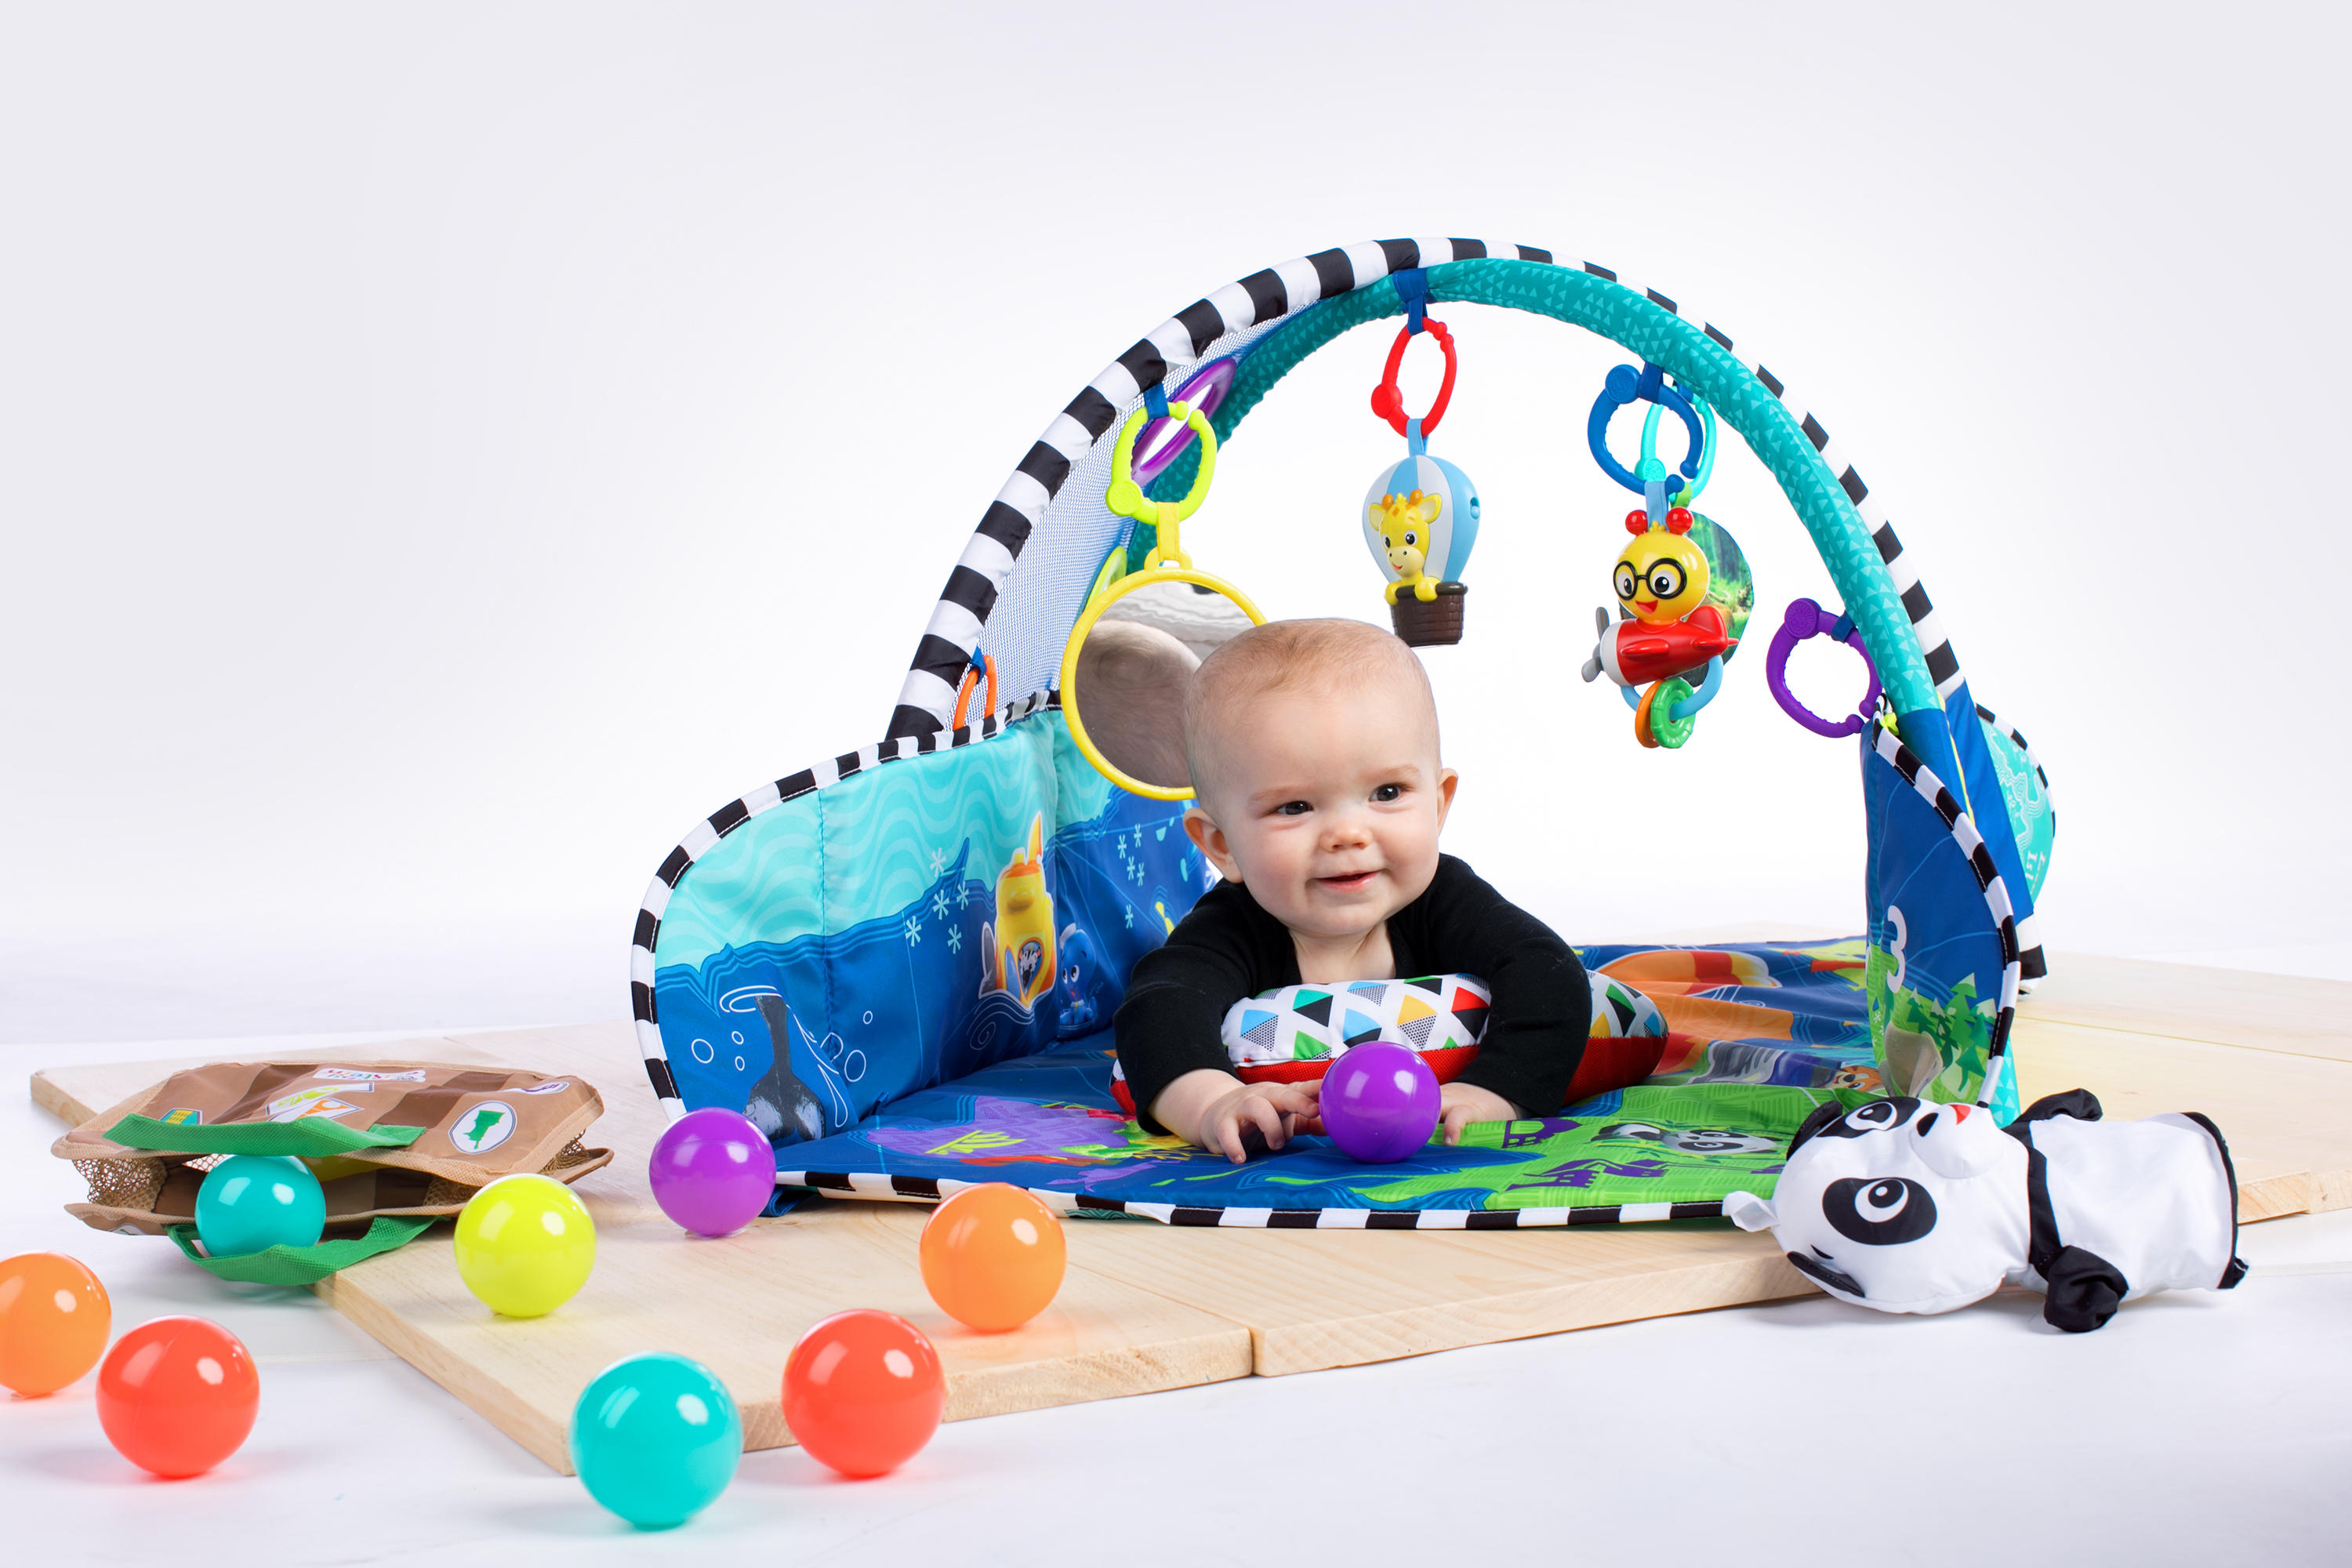 Journey of Discovery™ 5-in-1 Playmat